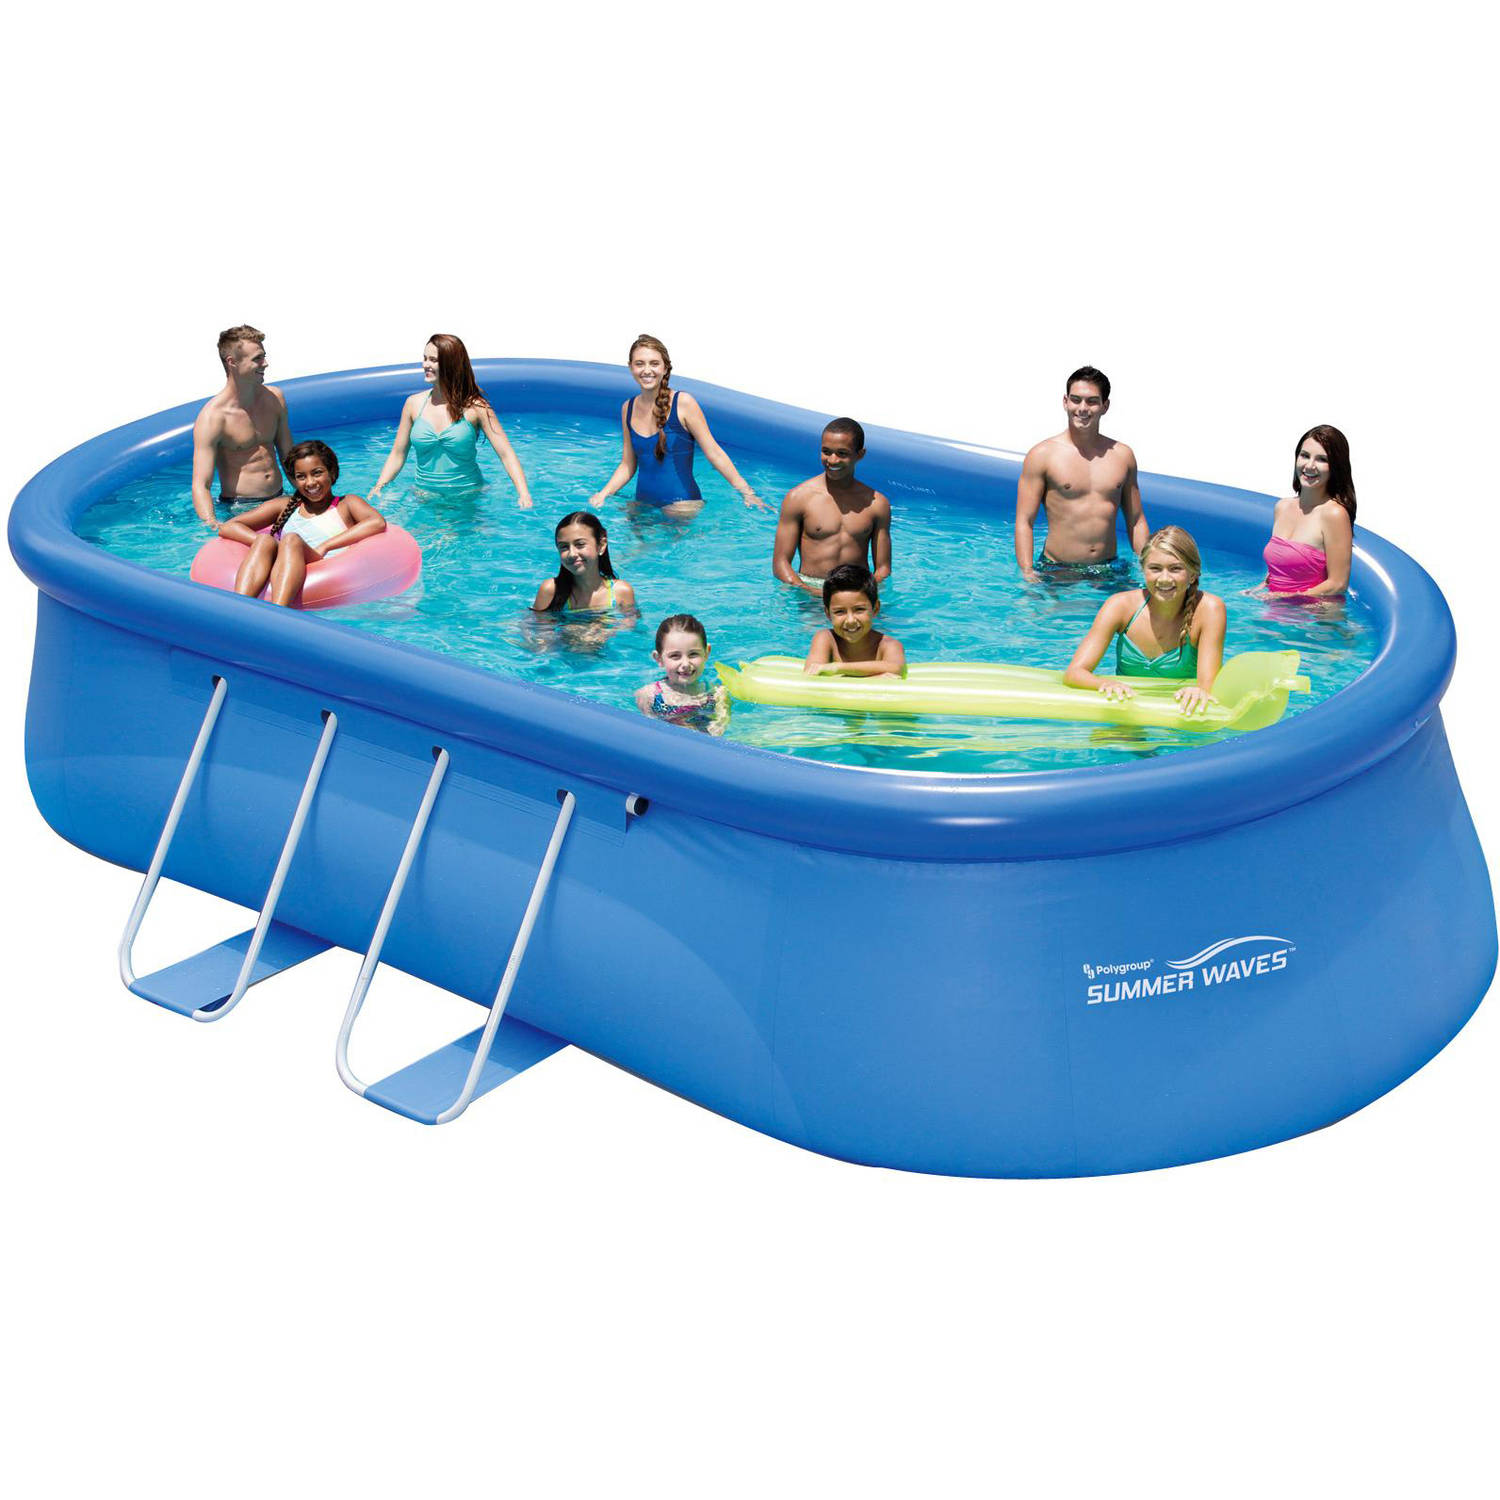 Summer Waves 20 39 X 12 39 X 48 Quick Set Oval Frame Above Ground Swimming Pool With At Garden